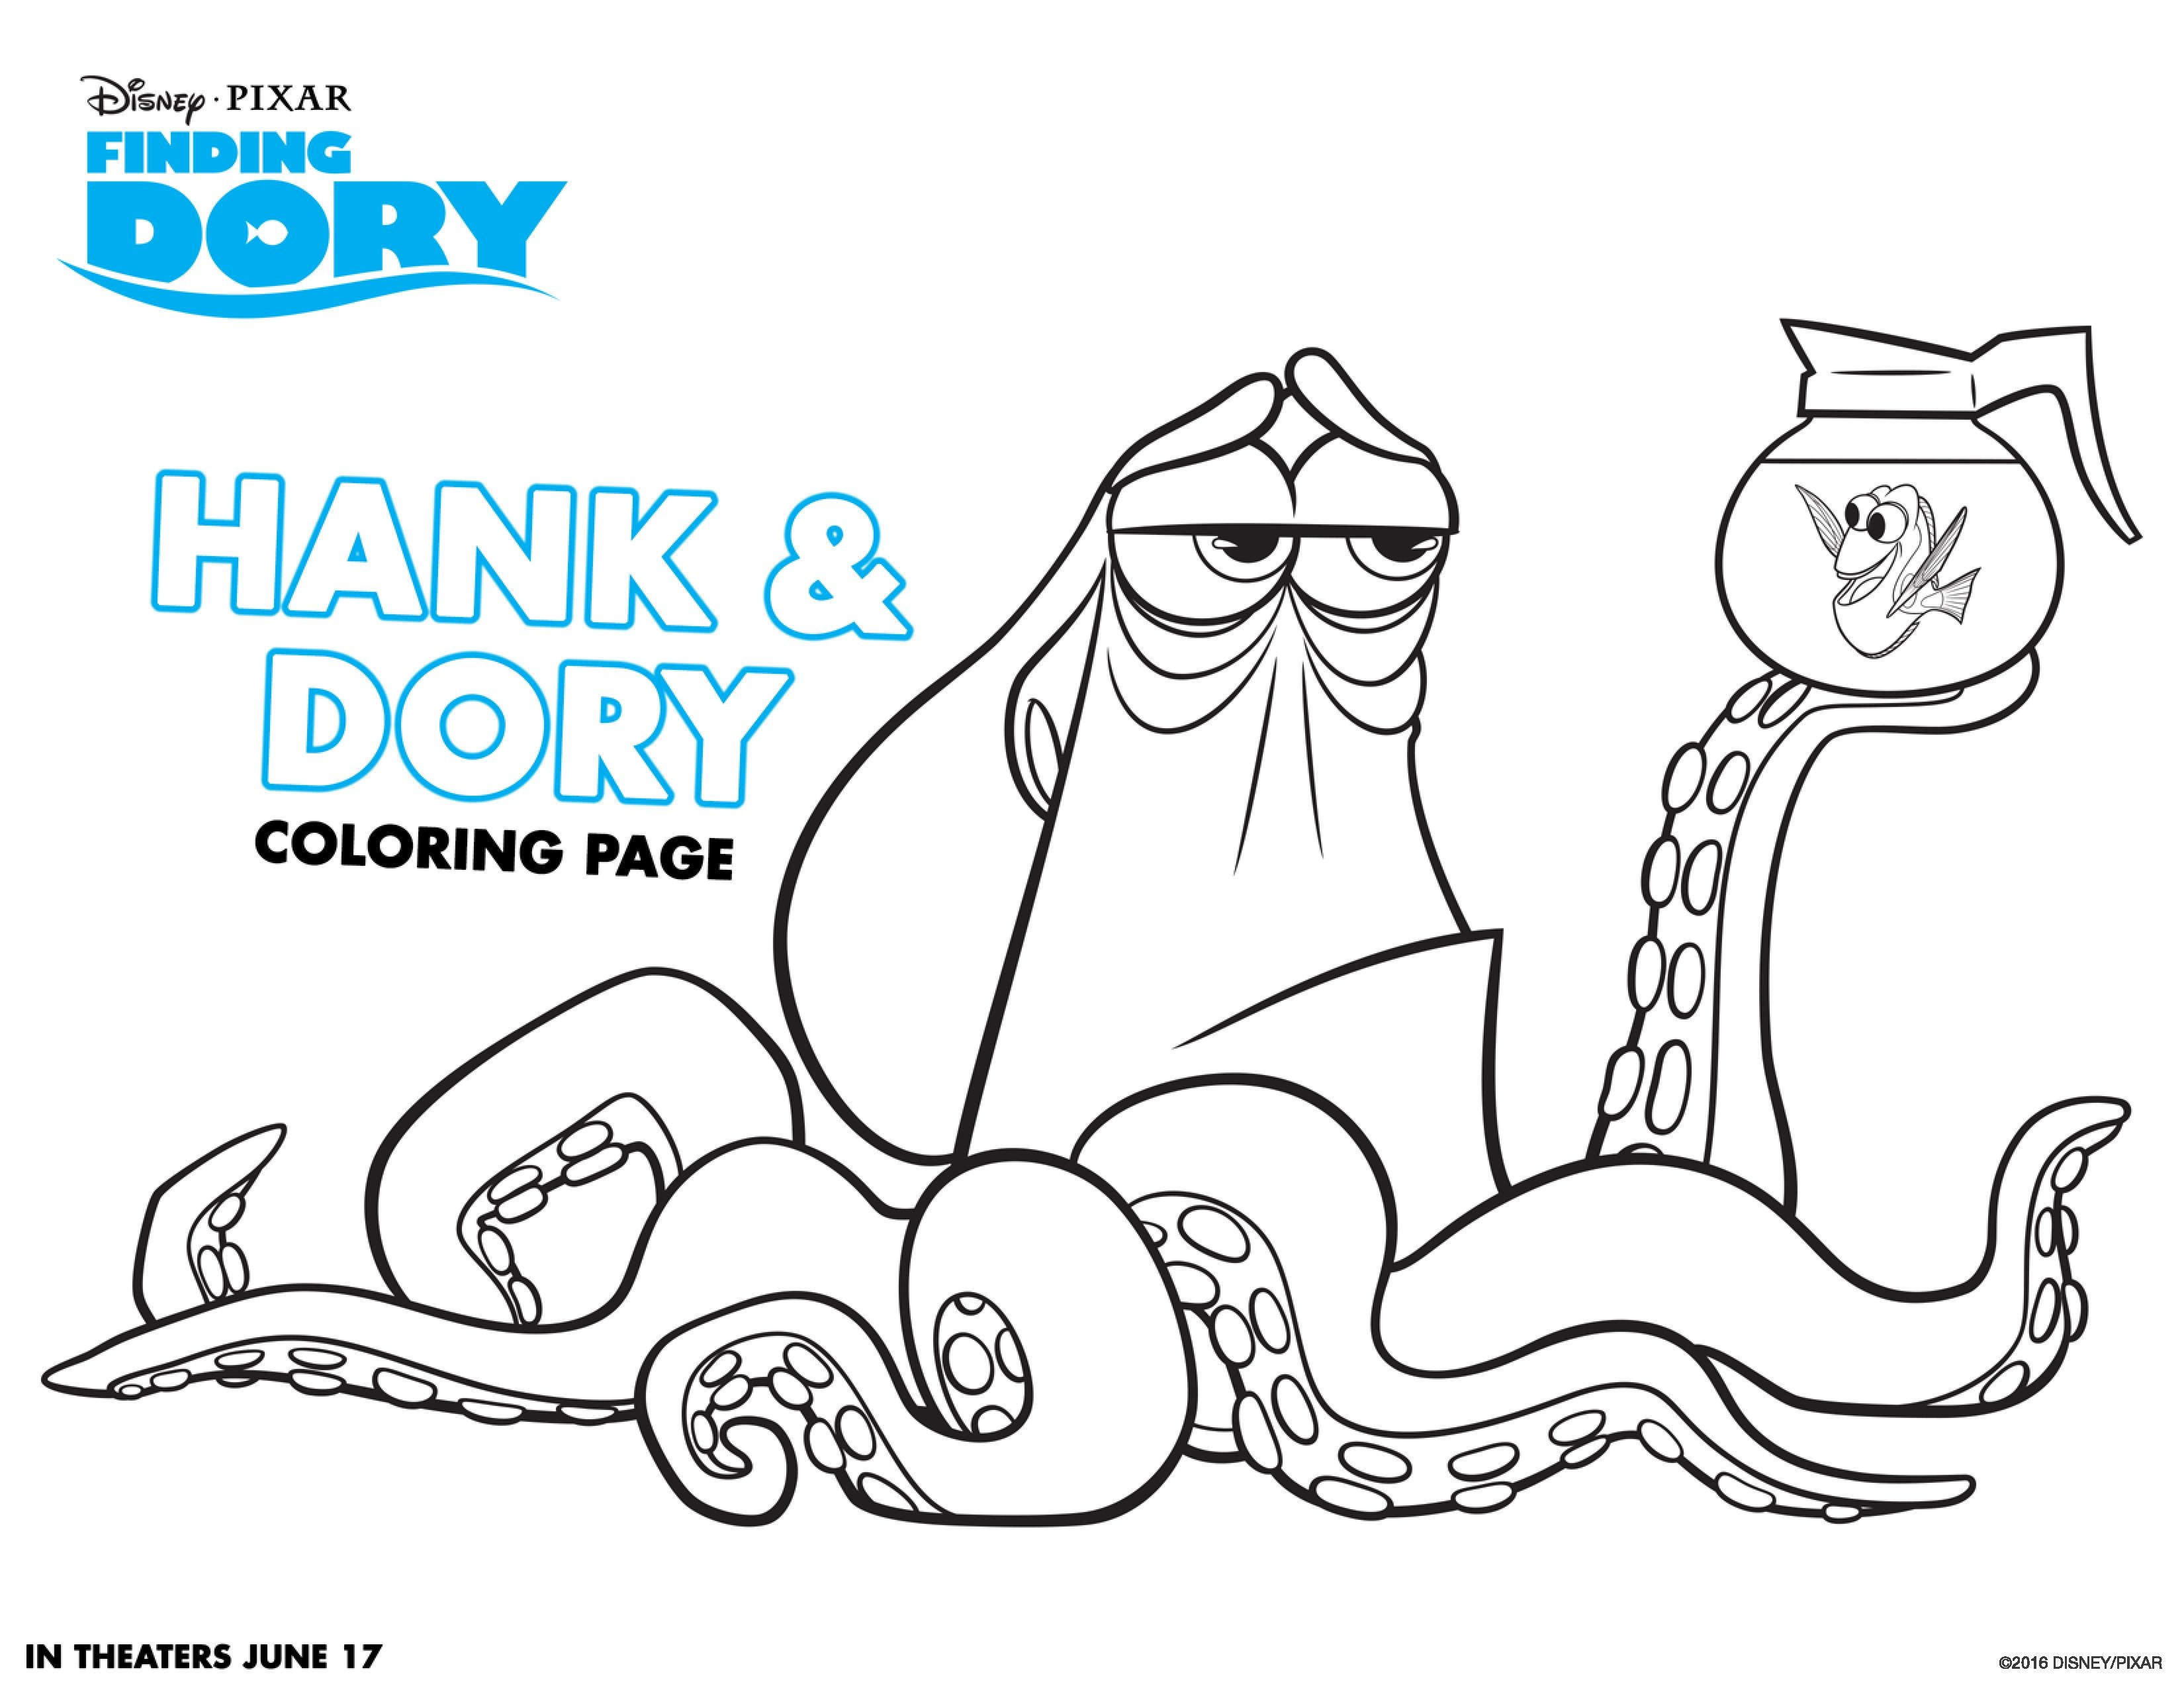 finding dory coloring pages - finding dory coloring pages and activity sheets